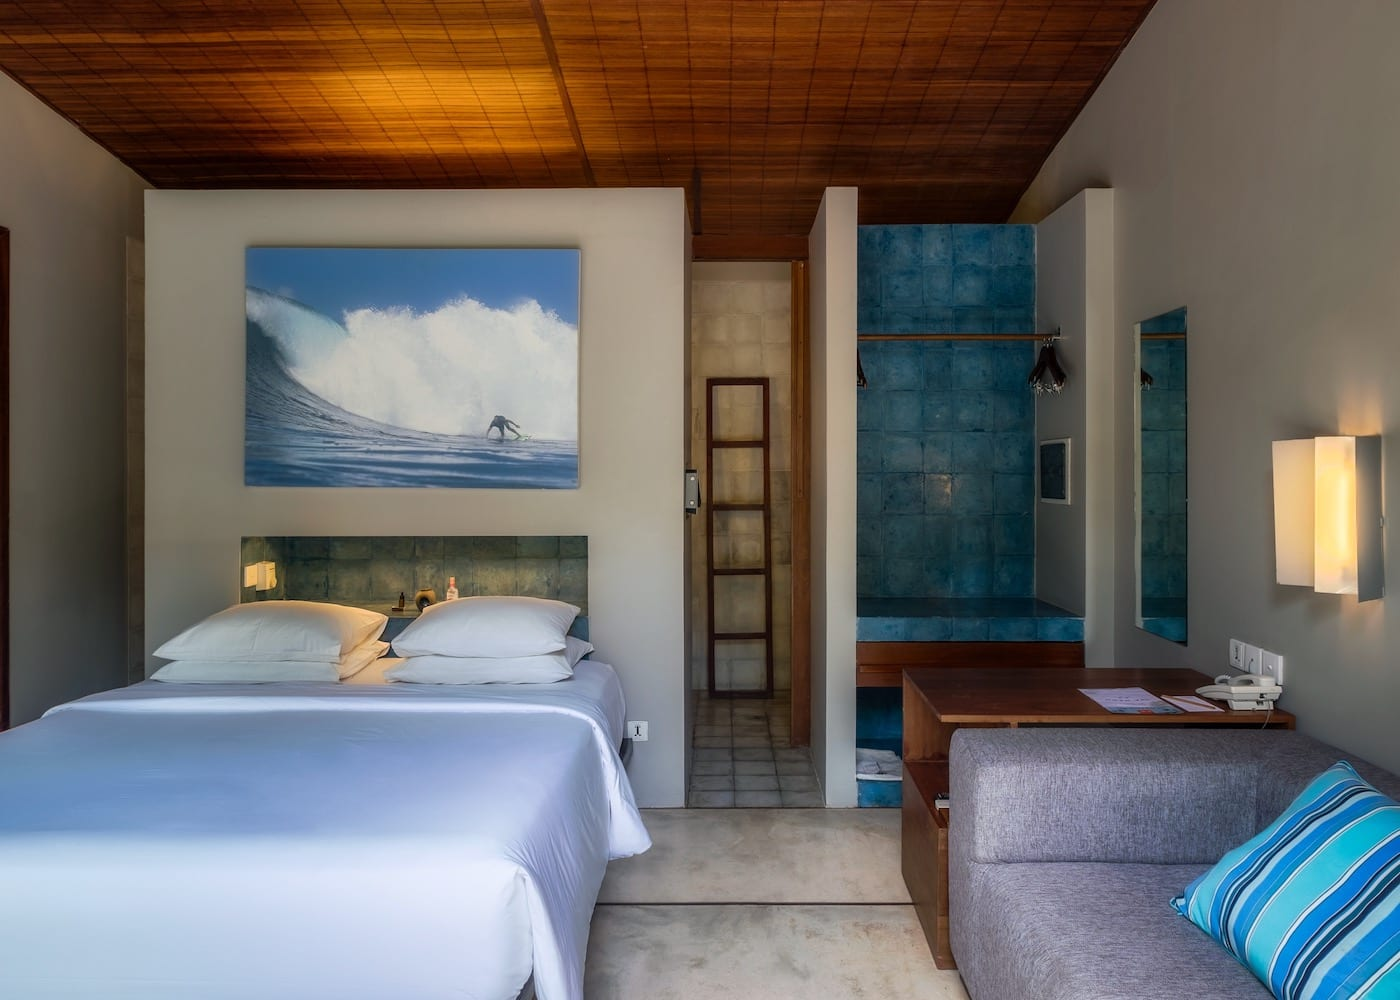 Book your weekend staycay at Hotel Komune and soak up all the Silent Day perks